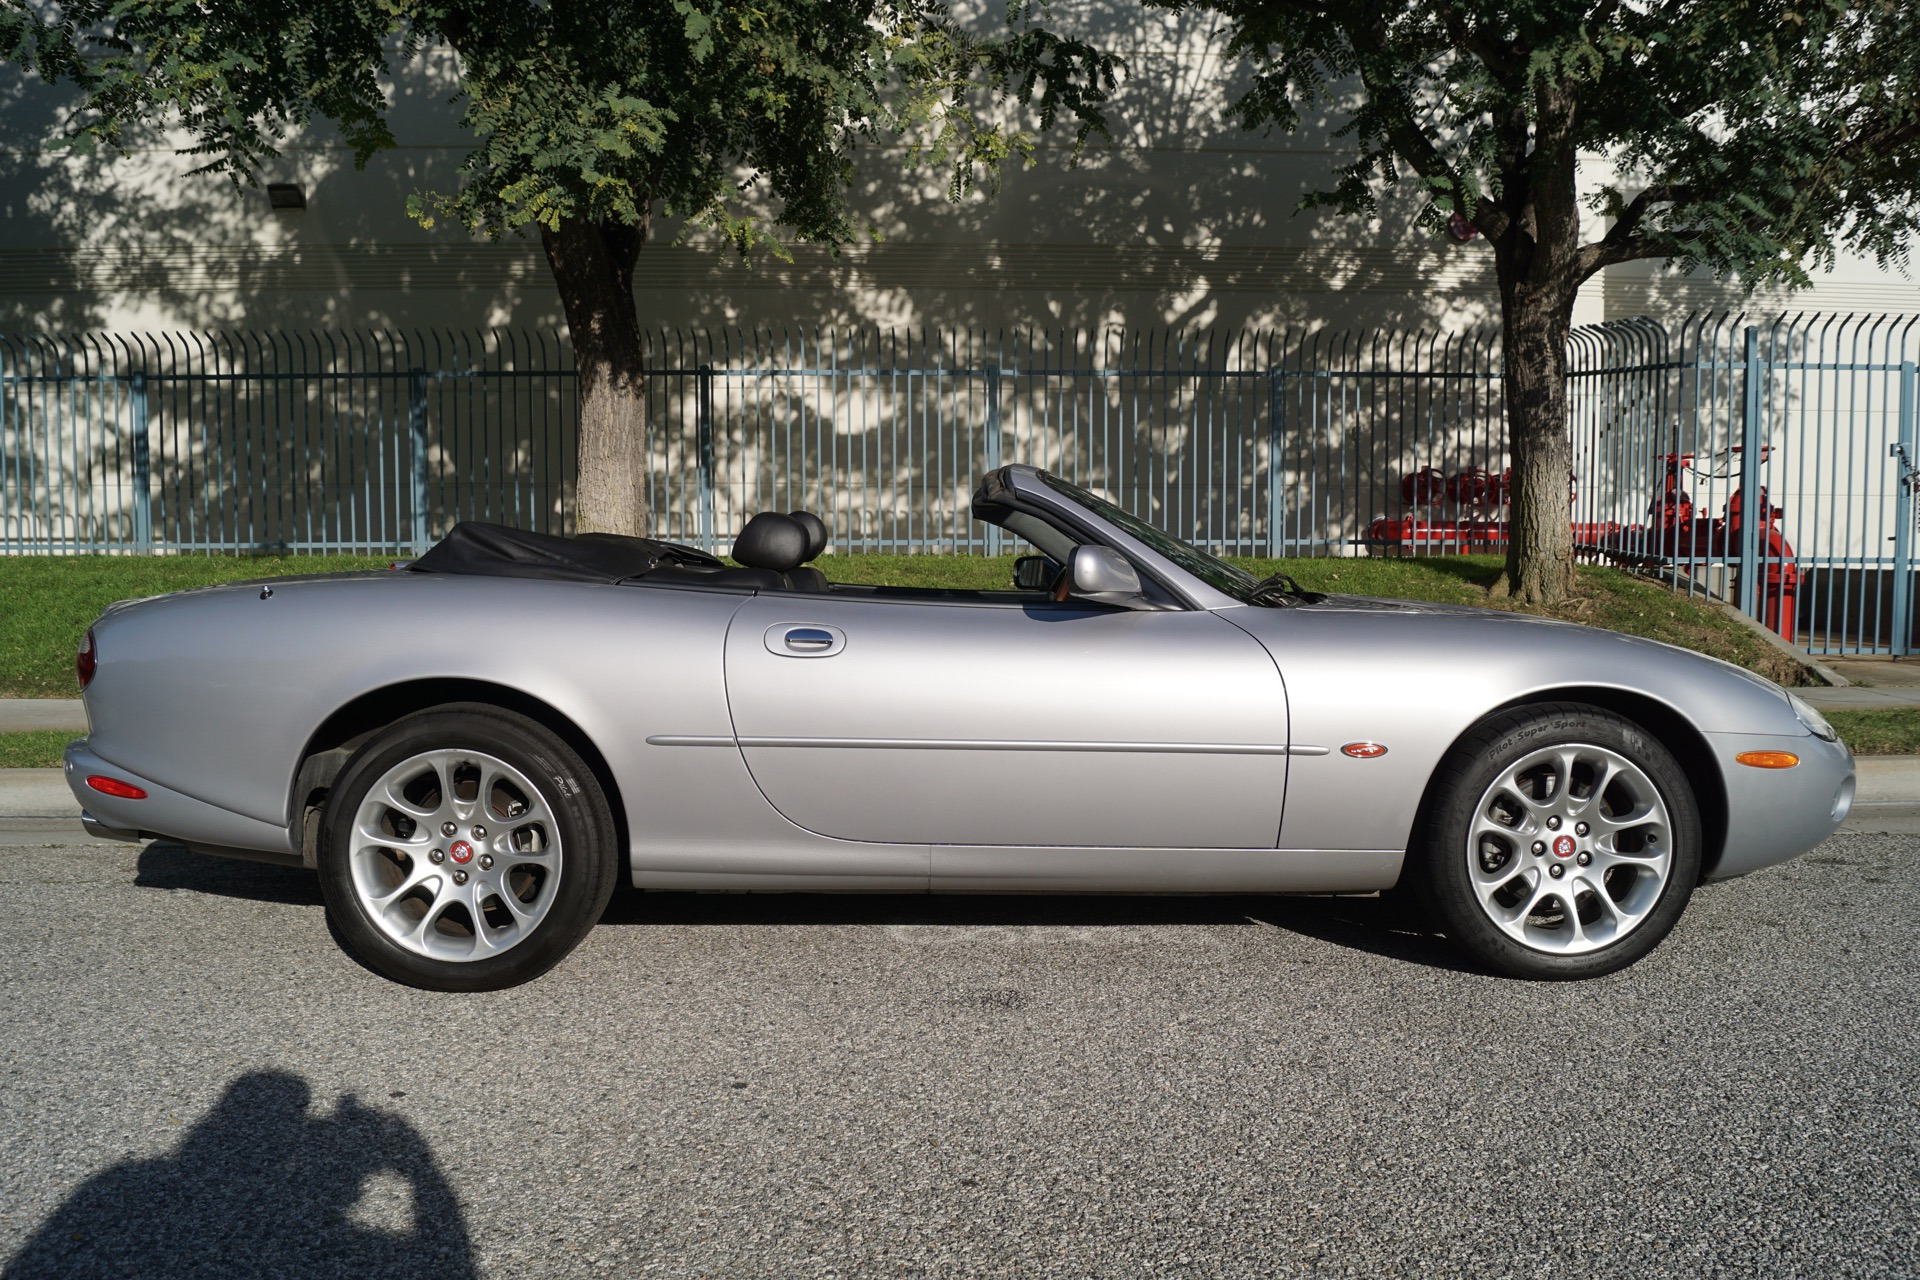 2001 Jaguar Xkr For Sale Used Jaguar Xkr For Sale In Torrance California Lunny S Auto